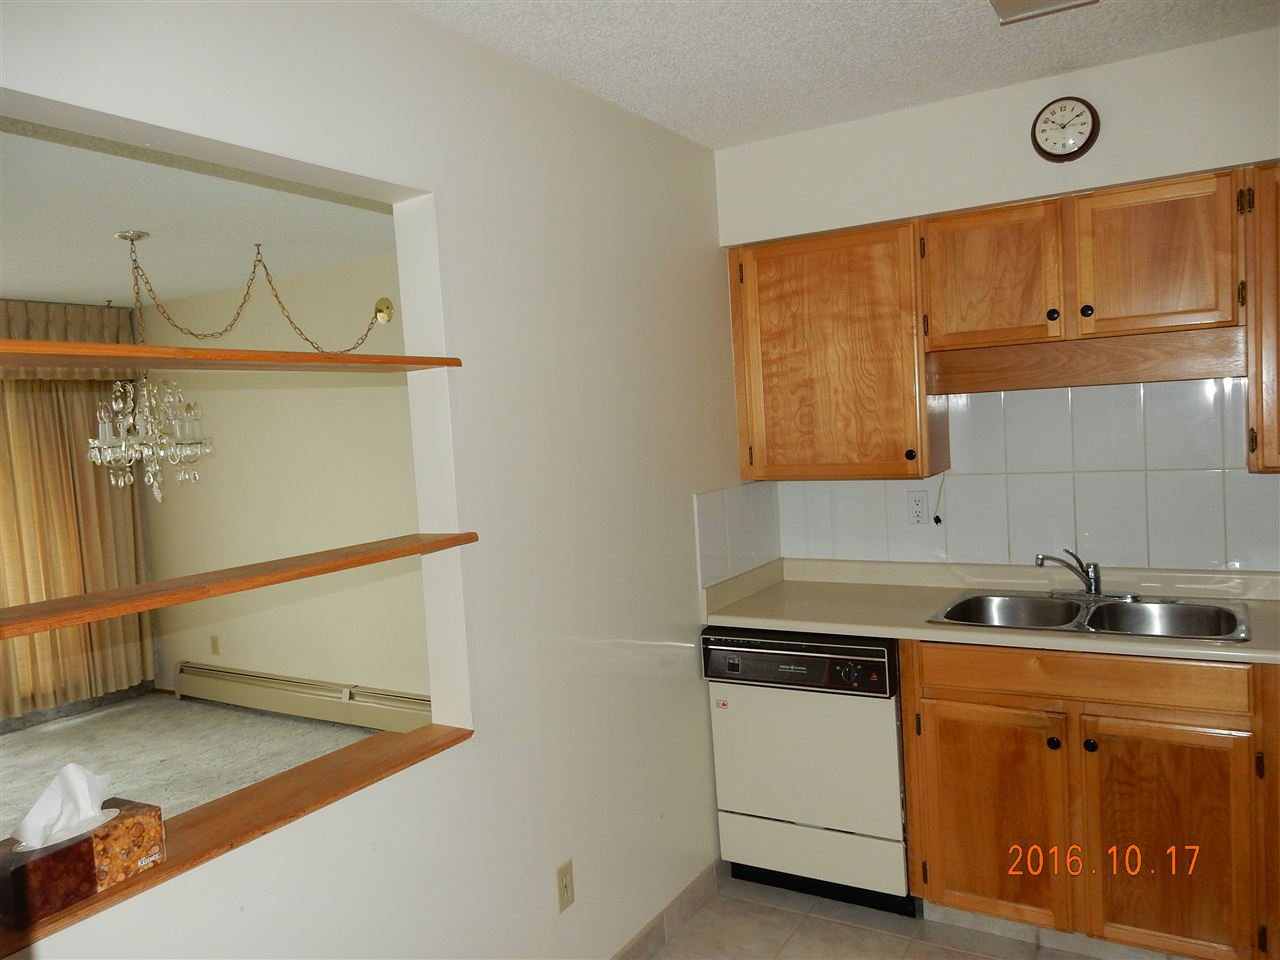 """Photo 5: Photos: 816 31955 OLD YALE Road in Abbotsford: Abbotsford West Condo for sale in """"Evergreen Village"""" : MLS®# R2117382"""